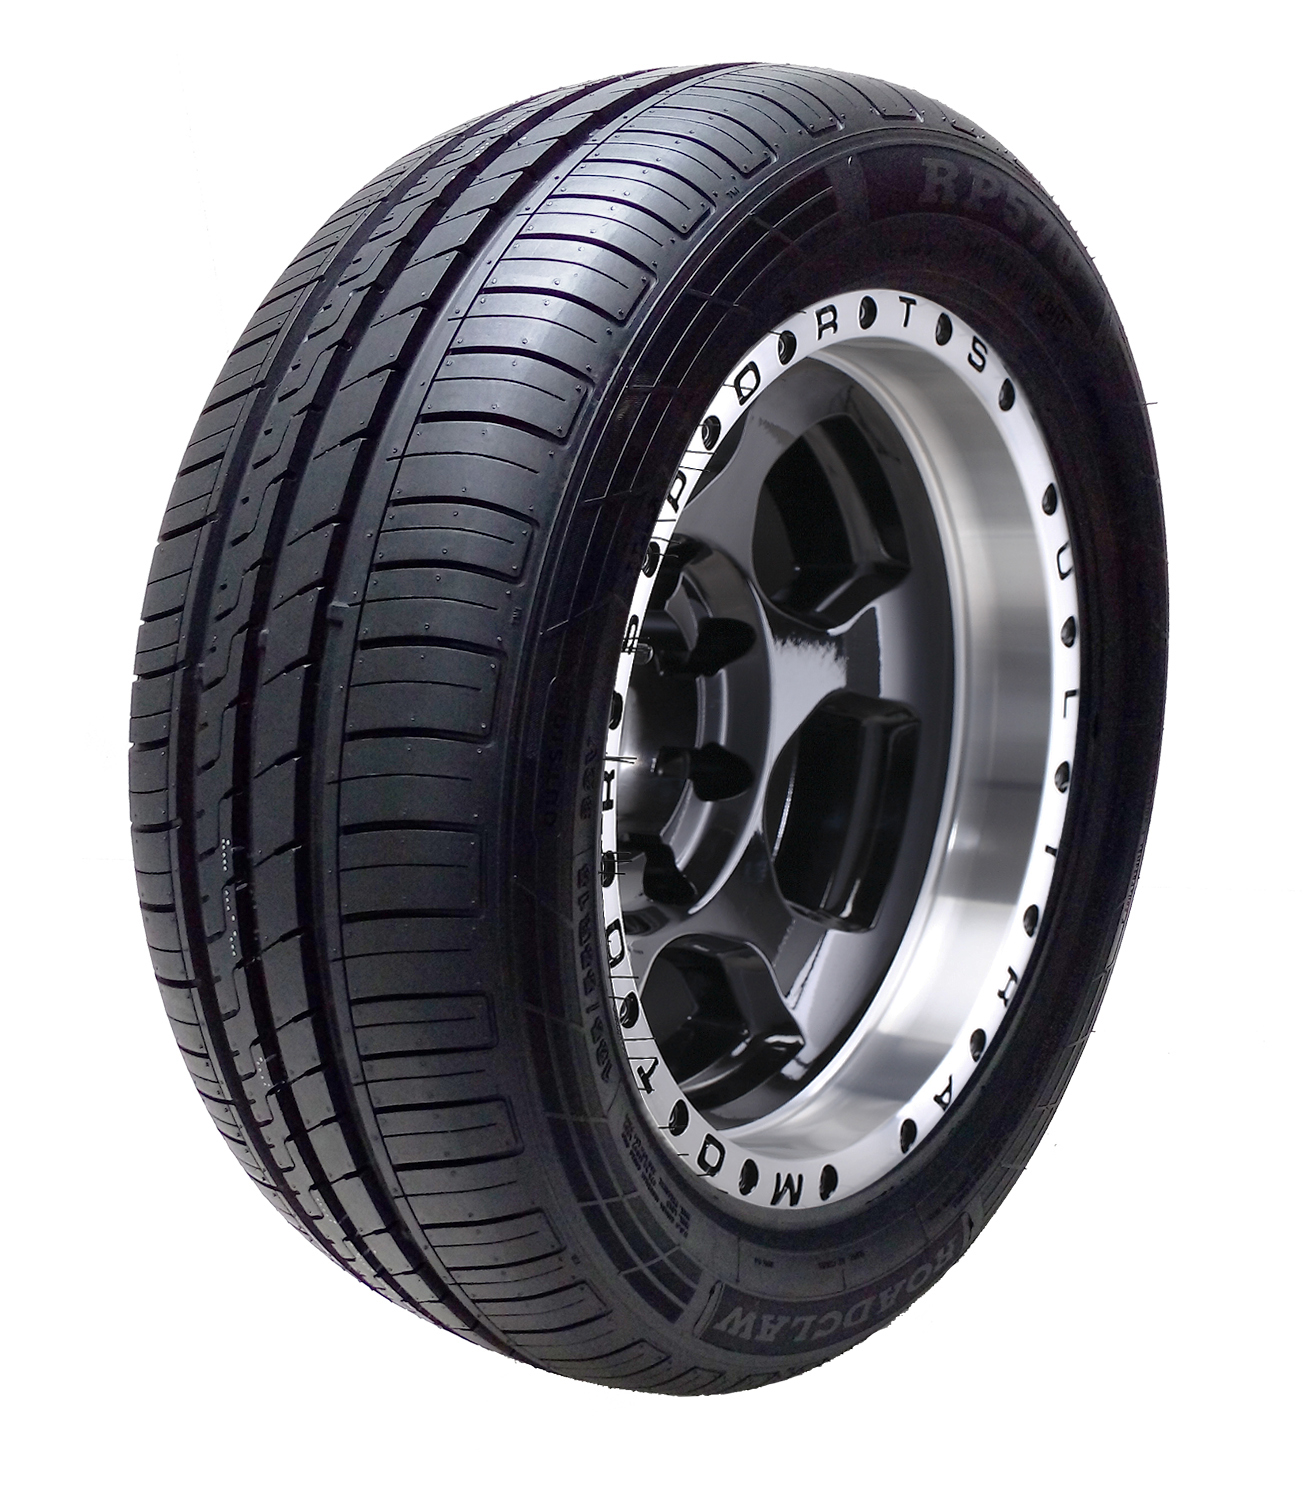 Roadclaw RP570 225/60R16 98H